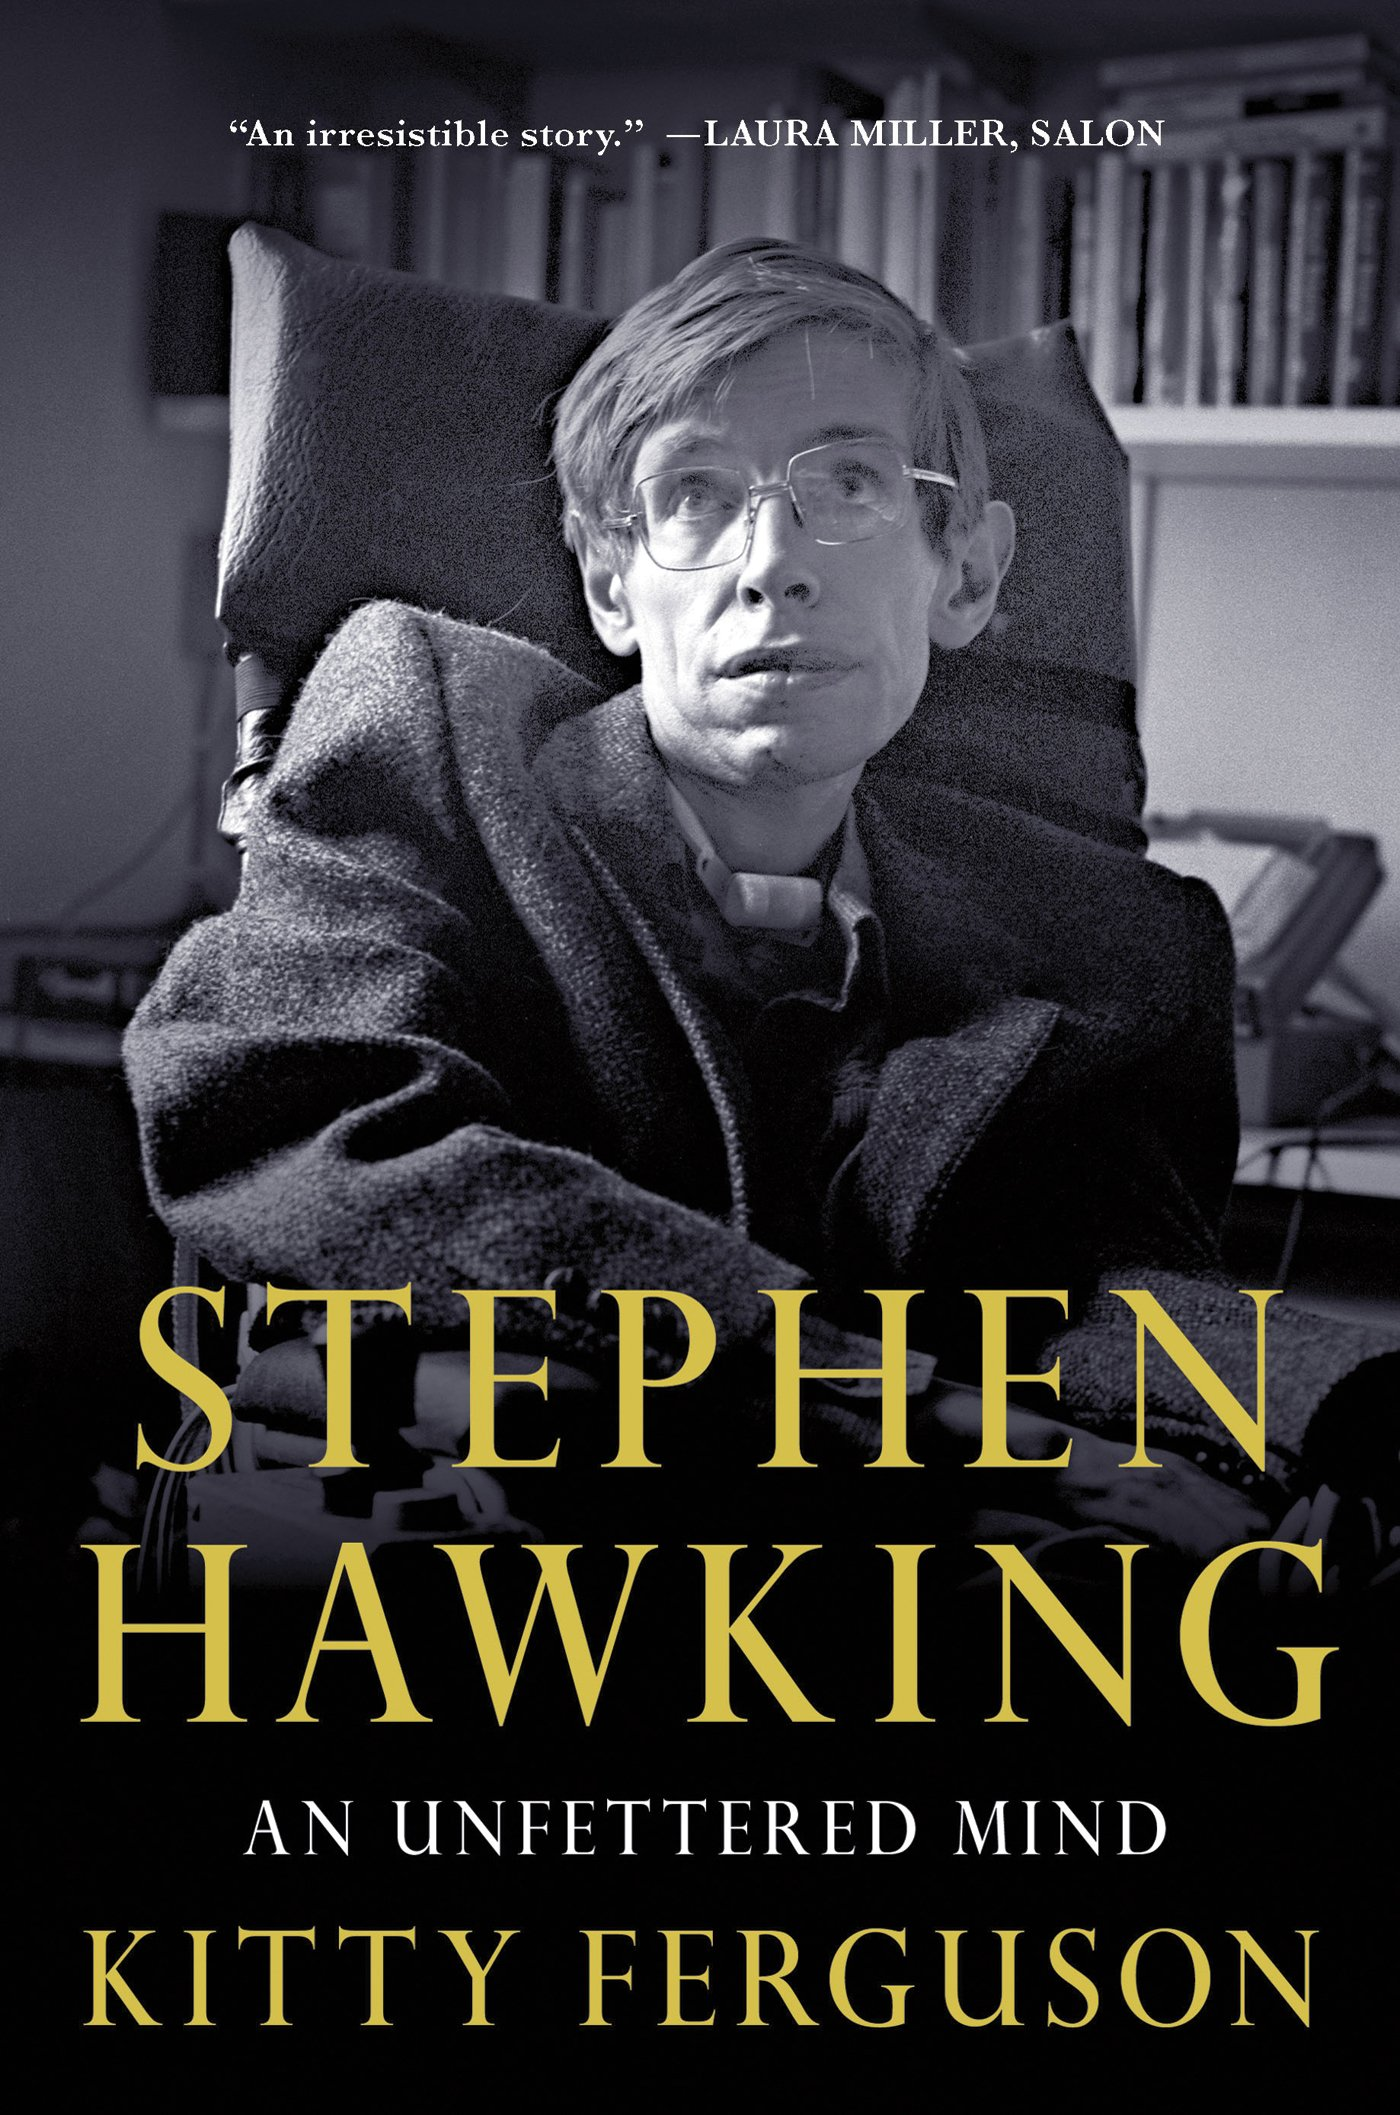 Stephen Hawking's Mother on Her Son's Singular Genius and How We Expand the Boundaries of Human Knowledge